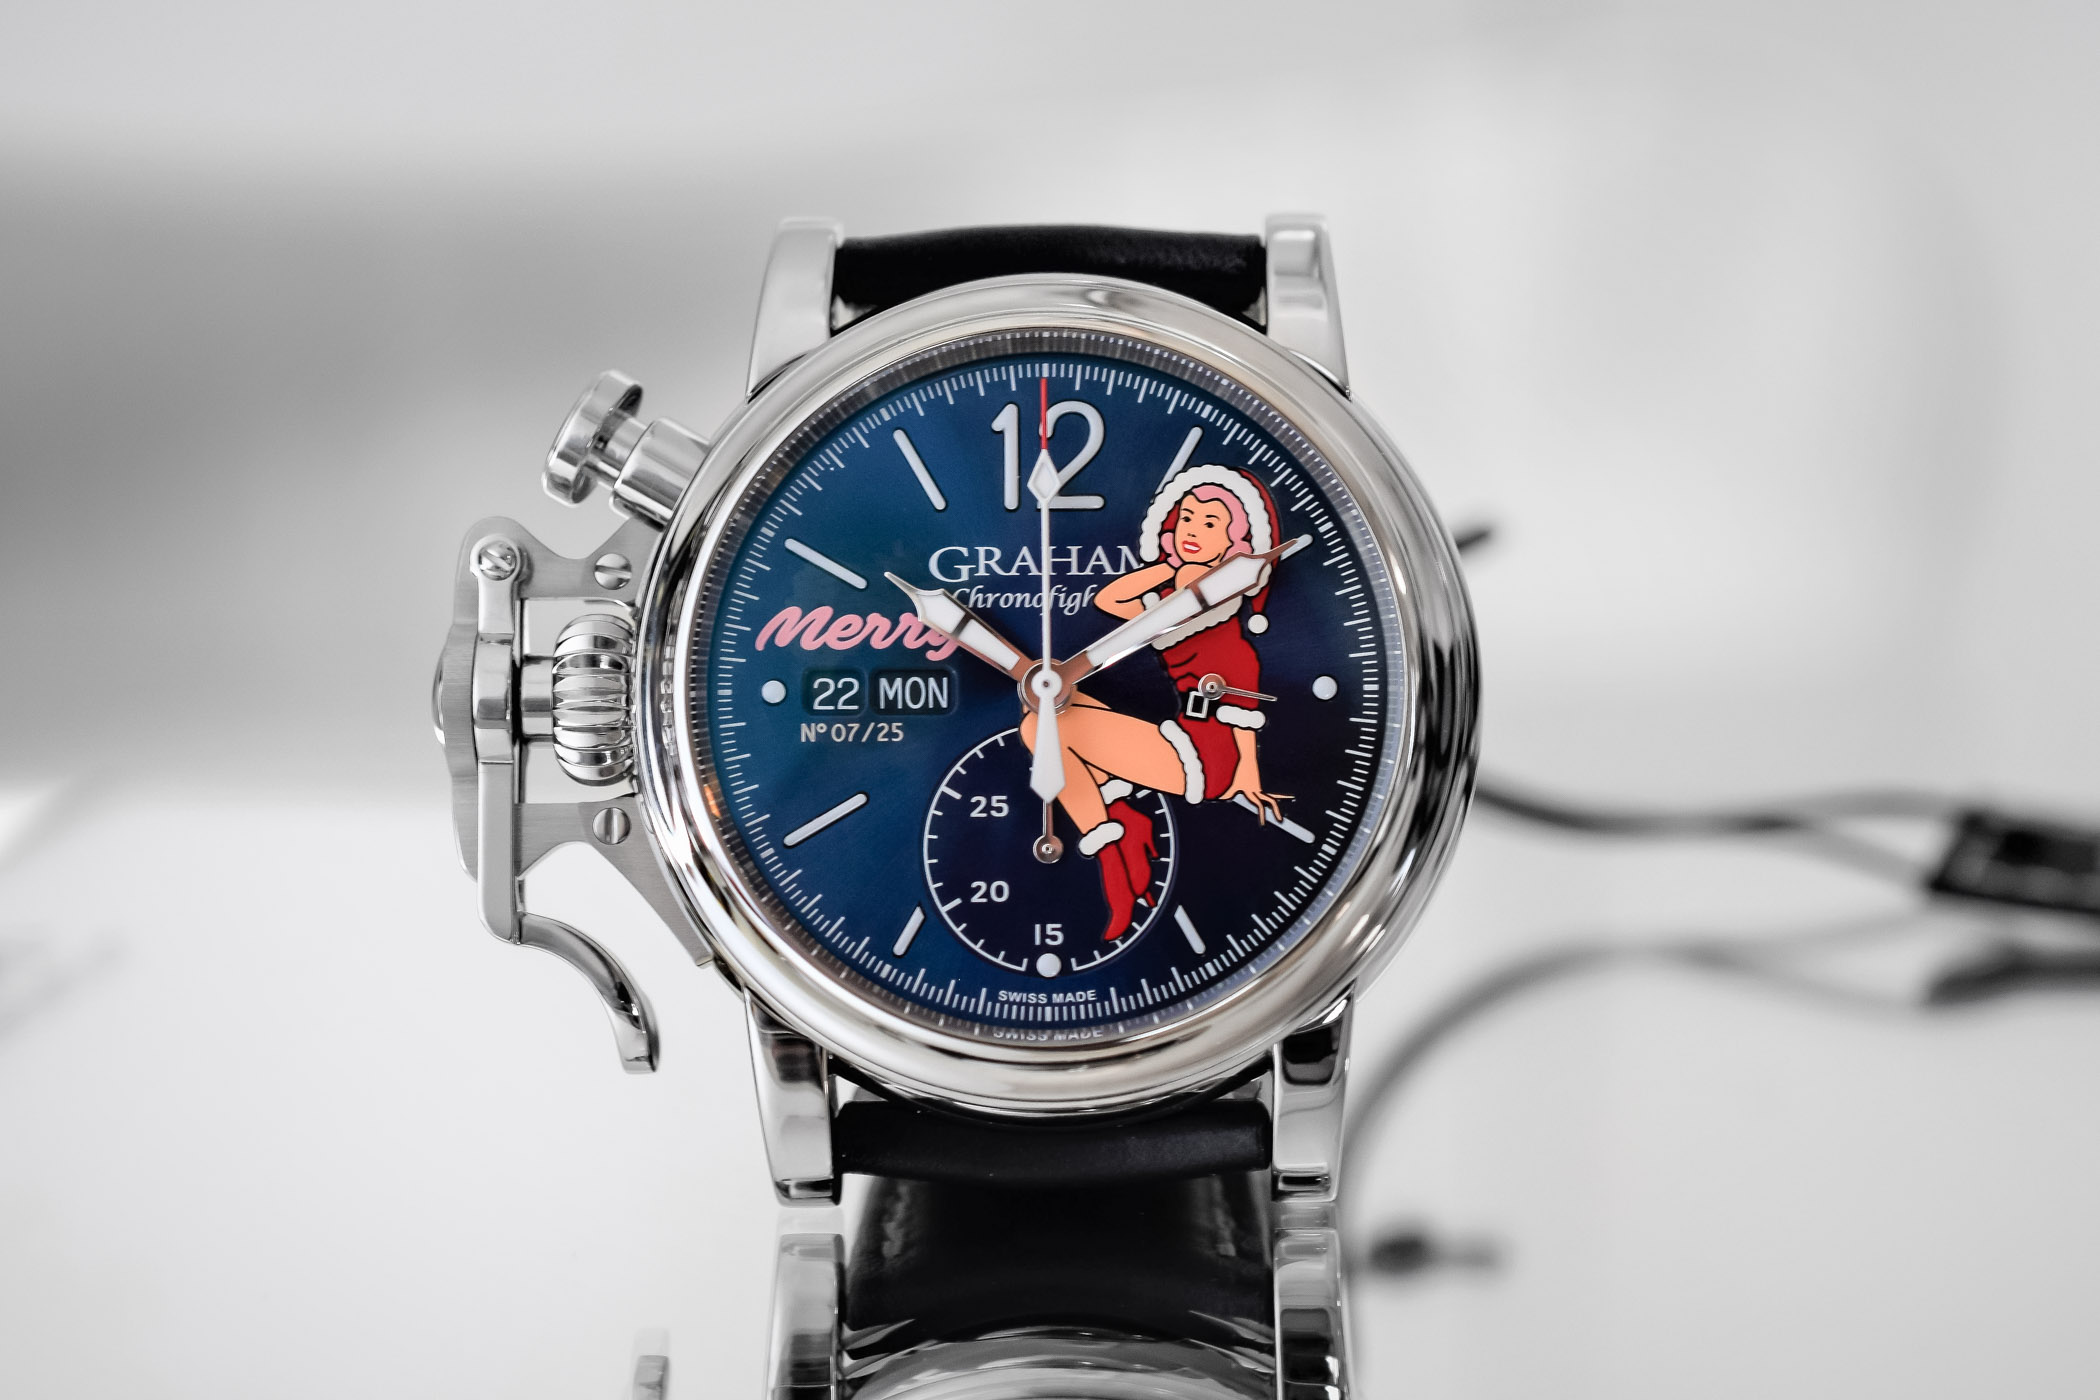 Graham Chronofighter Vintage Nose Art Merry Ltd